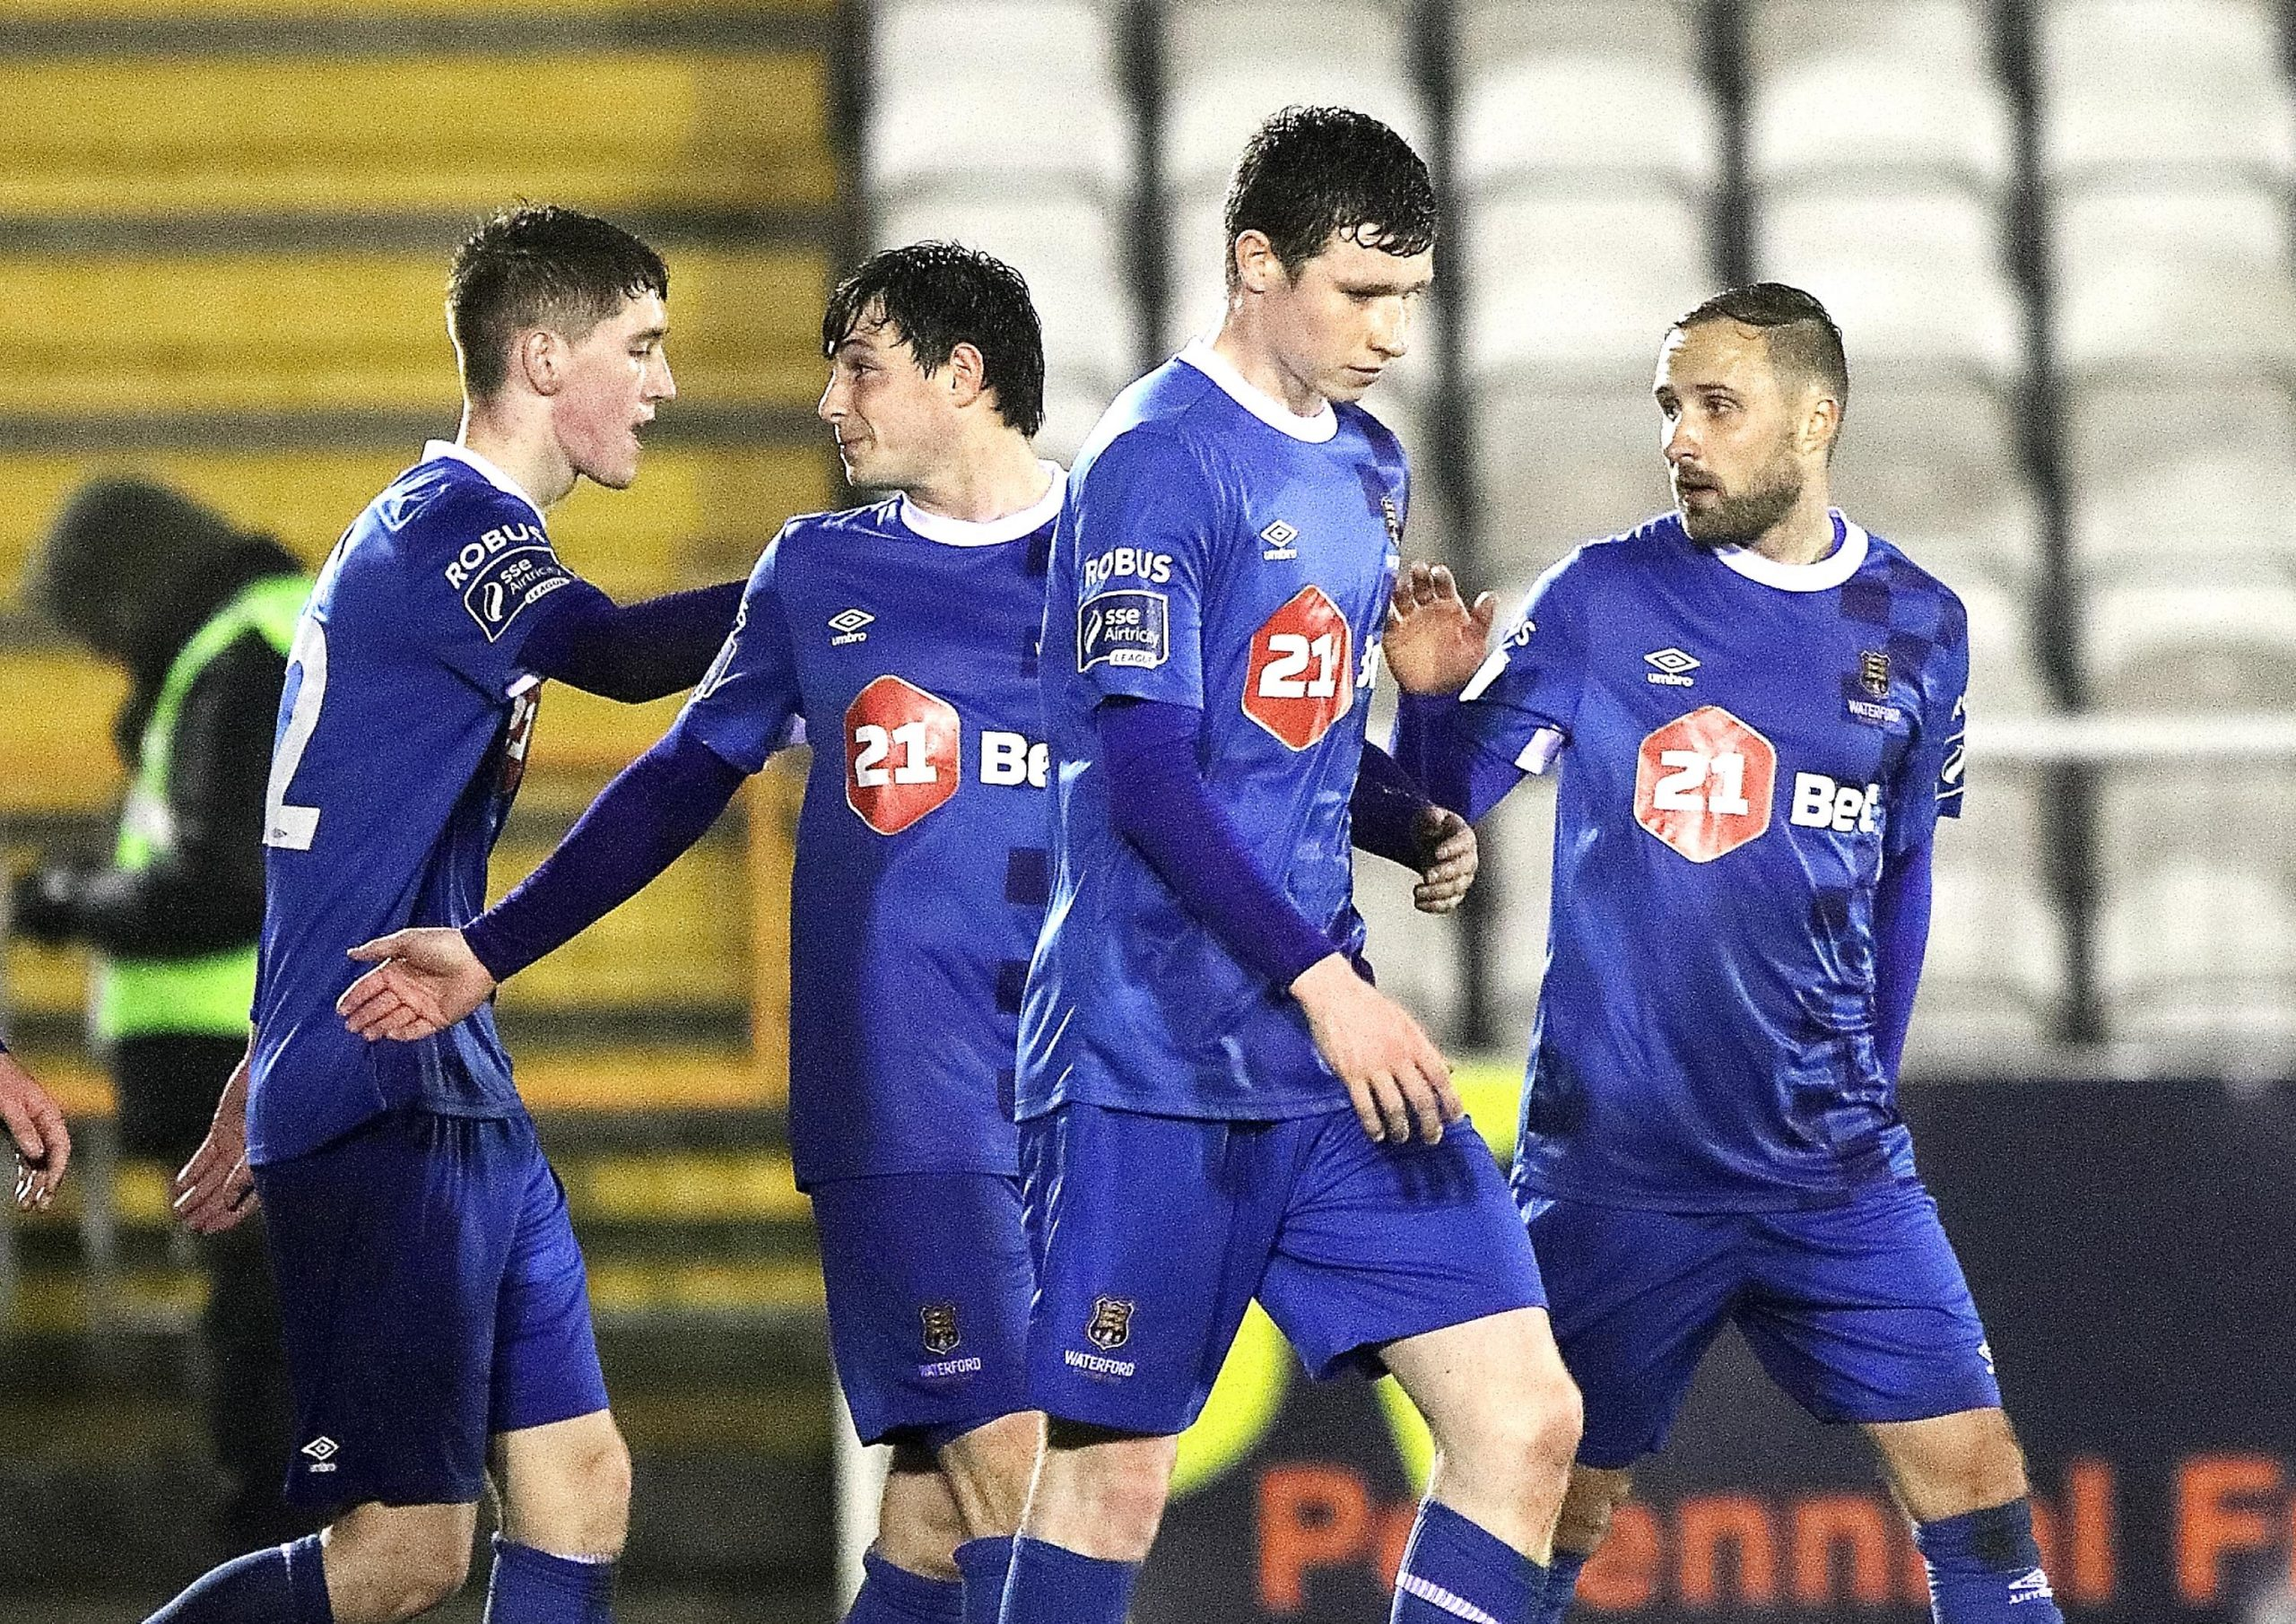 Waterford FC travel to Limerick this evening for another vital game in the Airtricity League Premier Division